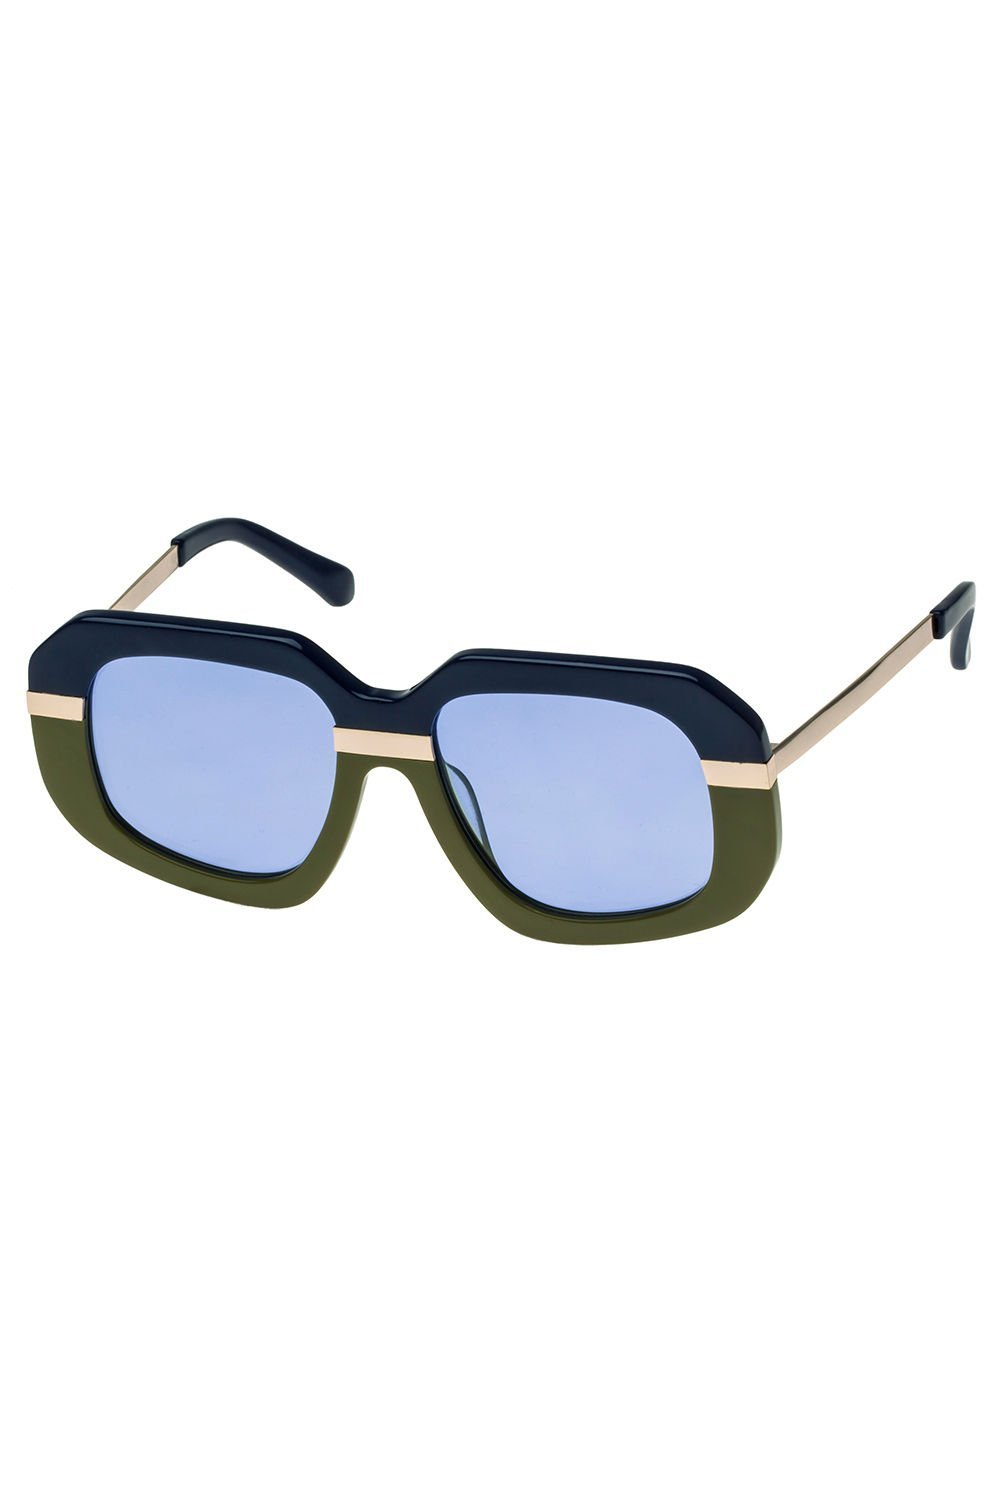 Karen Walker Navy Olive Gold Creeper Sunglasses